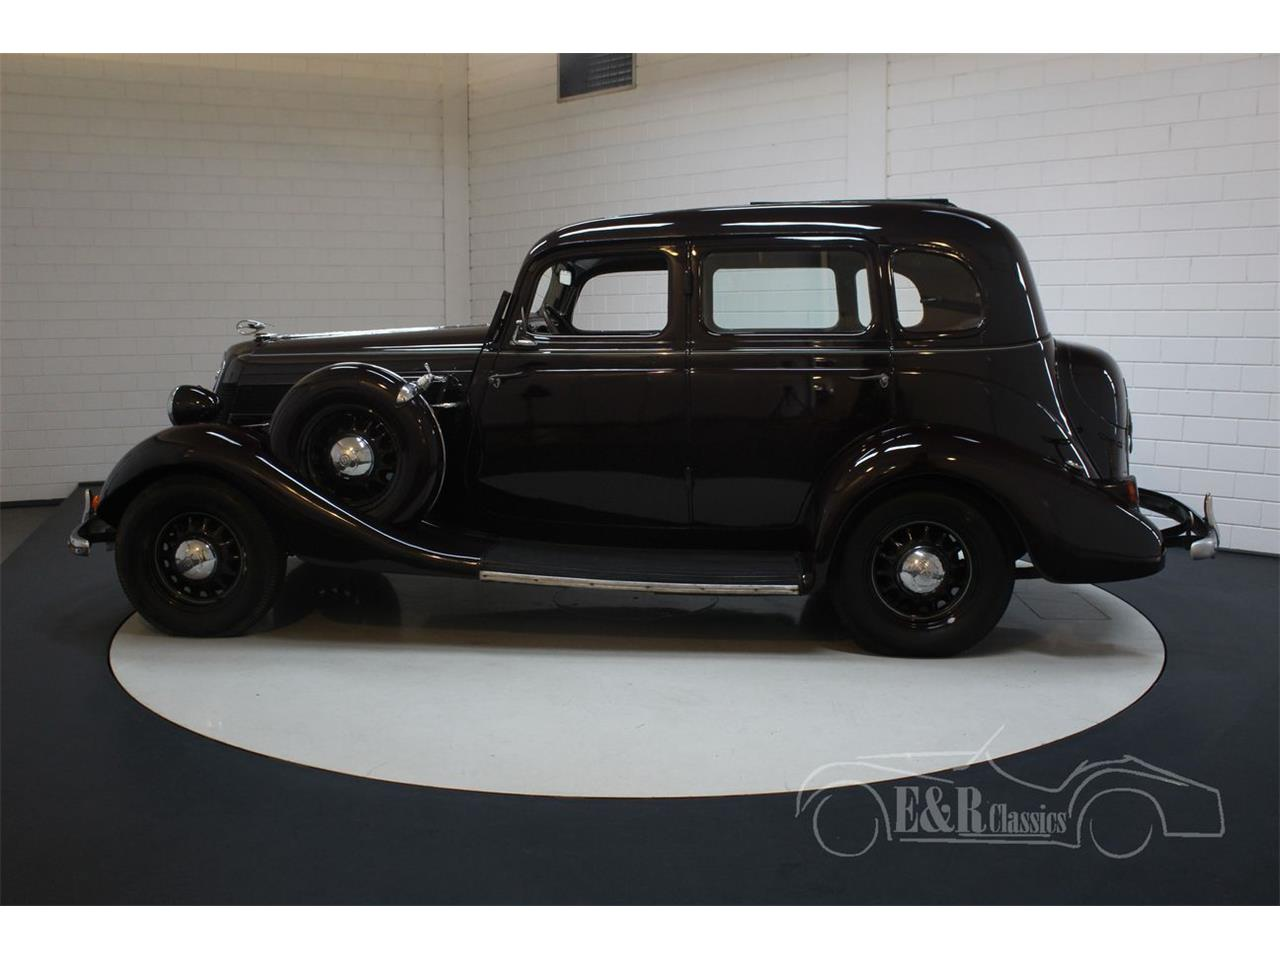 Large Picture of 1935 Studebaker Dictator located in Waalwijk noord brabant - $33,800.00 - QJ2R